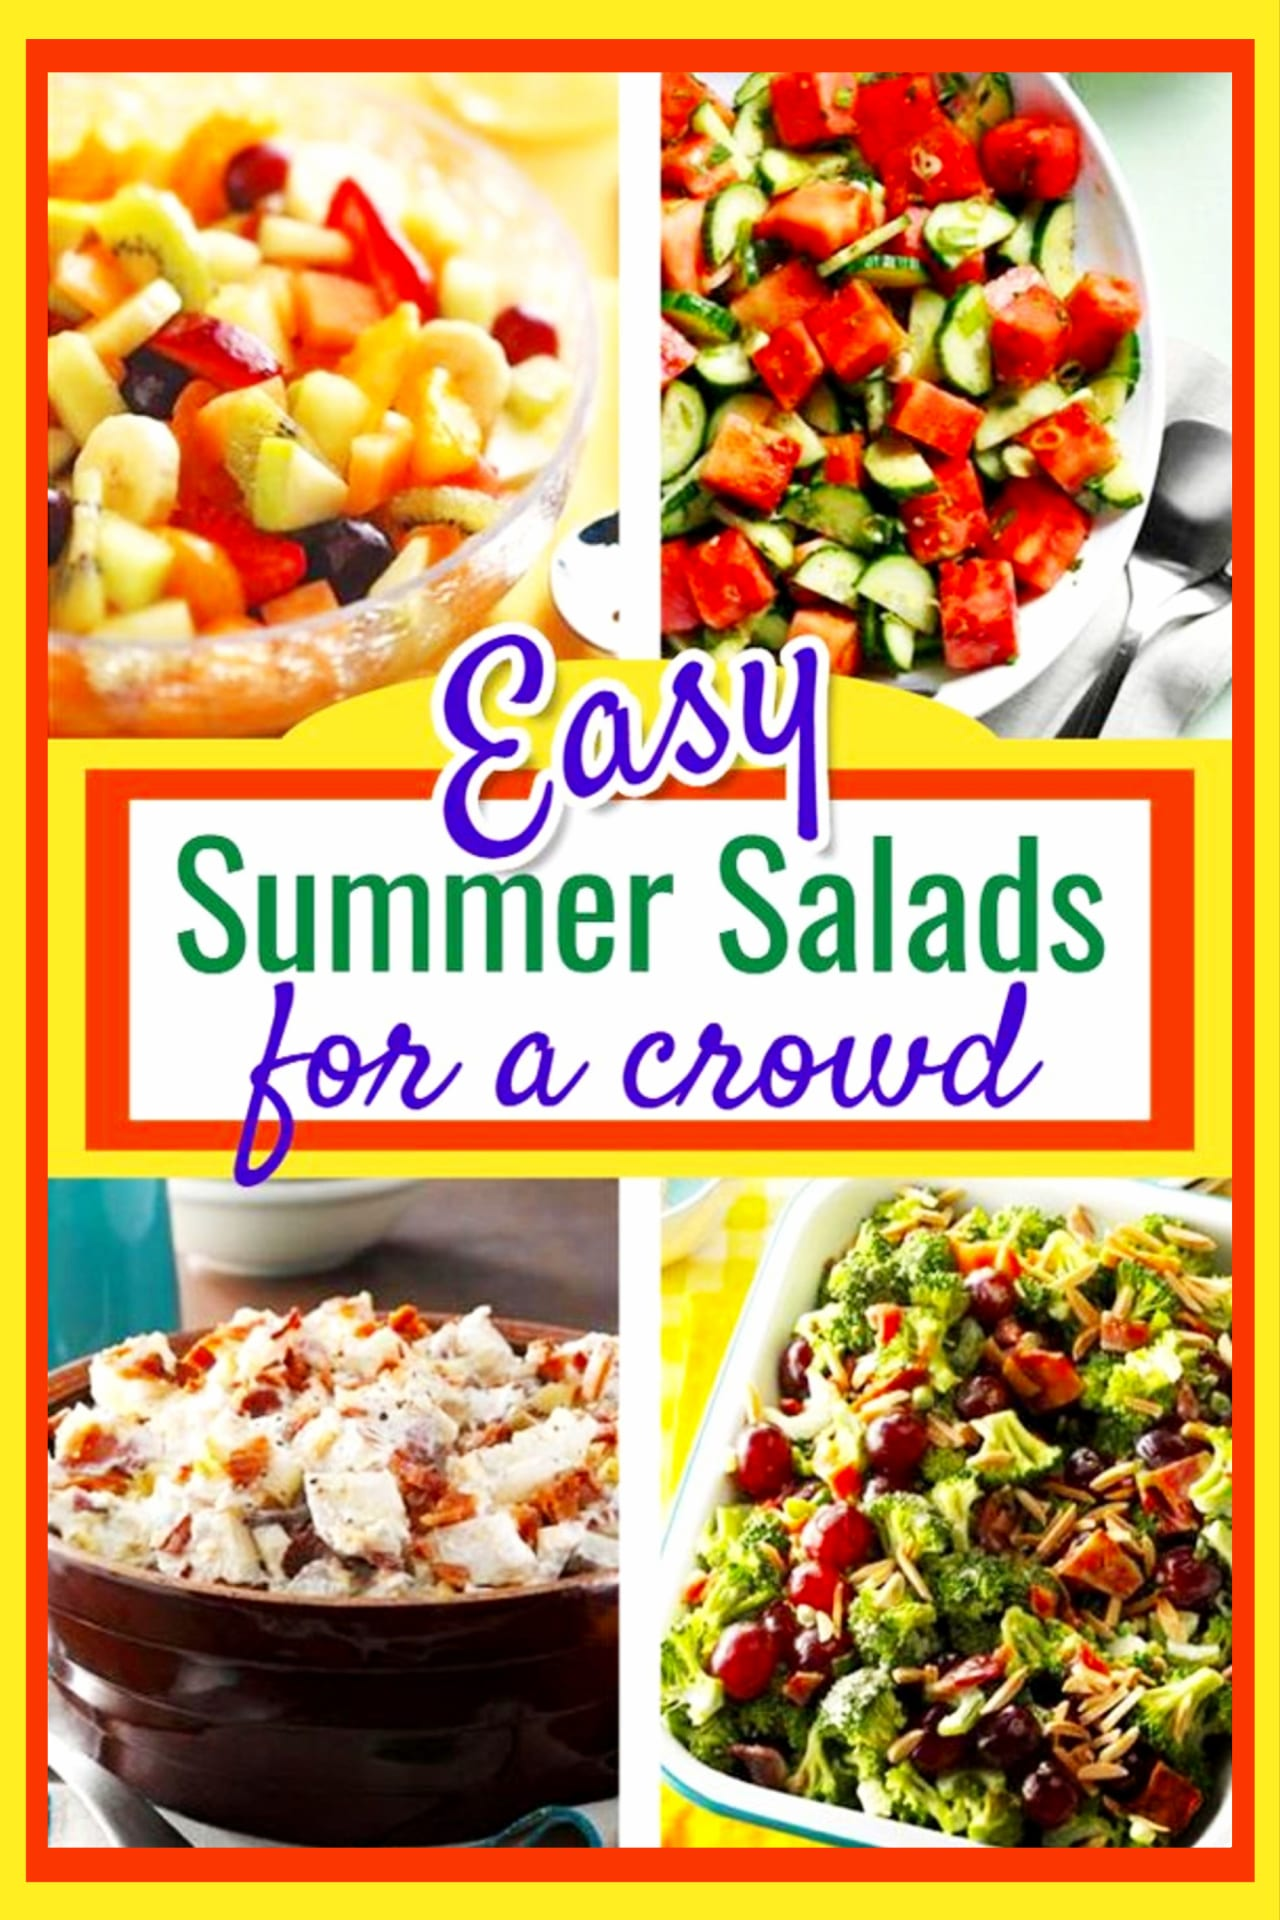 Summer salads for parties easy healthy summer salds for a crowd - easy BBQ cookout summer party food idea or for your block party, picnics, potlucks, easy summer dinners for all families or family reunion - fruit bowls summer salads , easy recipes including cold pasta summer salads - summer salads with chicken and more